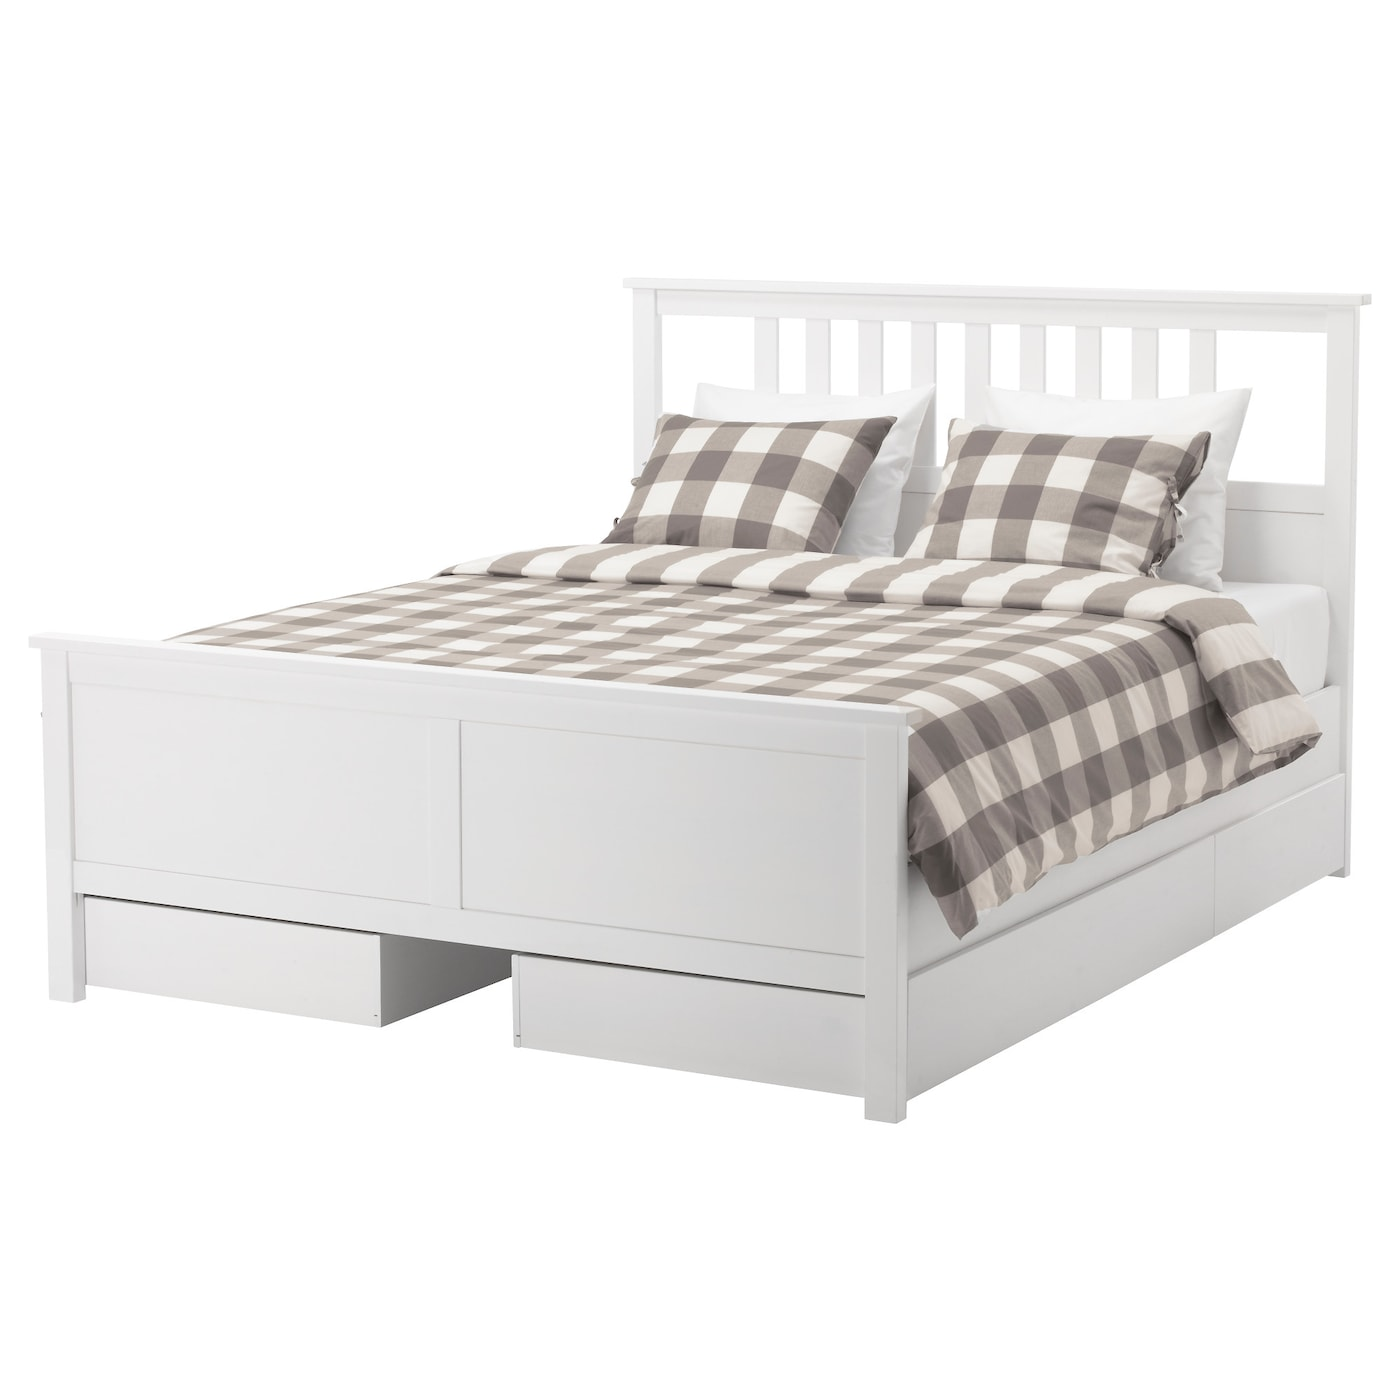 Hemnes bed frame with 4 storage boxes white stain lur y for Ikea hemnes wohnzimmerserie